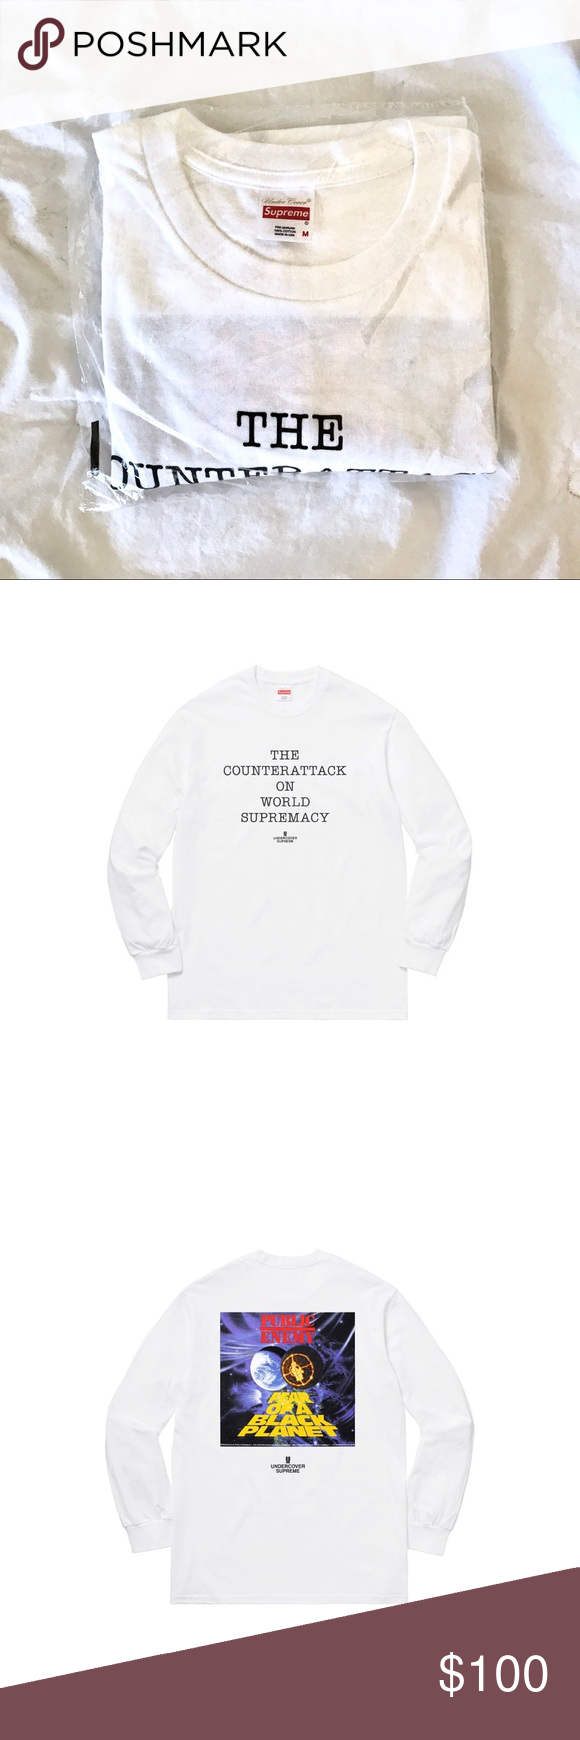 d7f2608cb048 Supreme x Undercover/Public Enemy Counterattack LS Supreme x Undercover/Public  Enemy Collaboration long sleeve t-shirt DS UNOPENED Supreme Shirts Tees ...